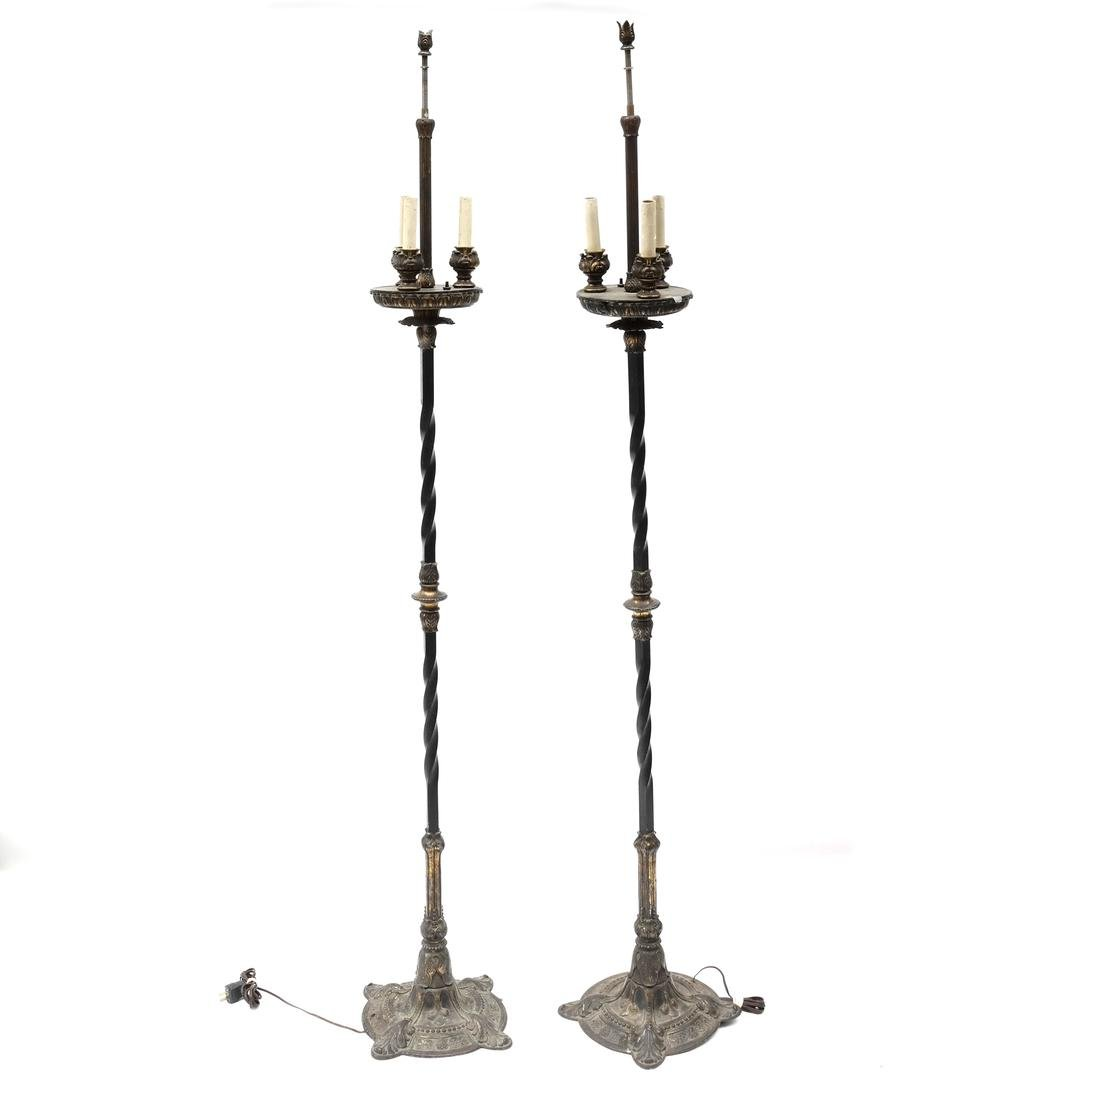 Pair of Gothic-Style Iron Floor Lamps